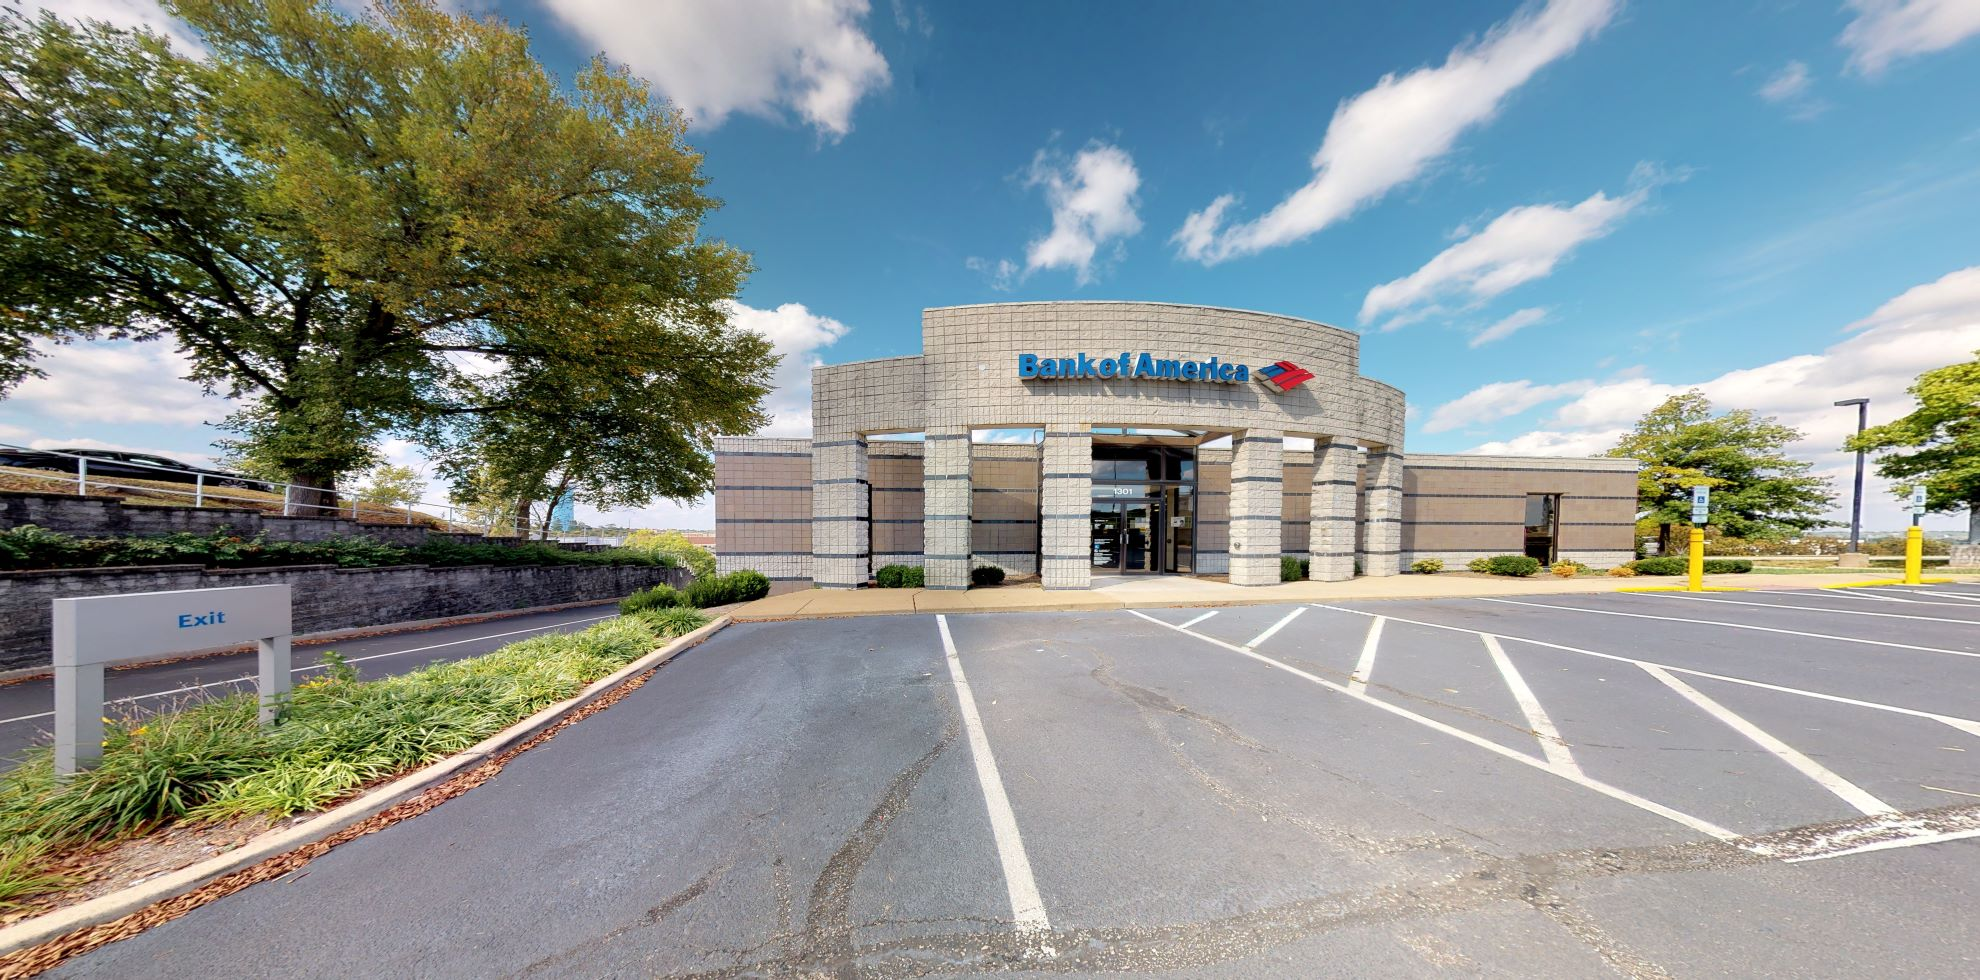 Bank of America financial center with drive-thru ATM and teller | 1301 Jeffco Blvd, Arnold, MO 63010